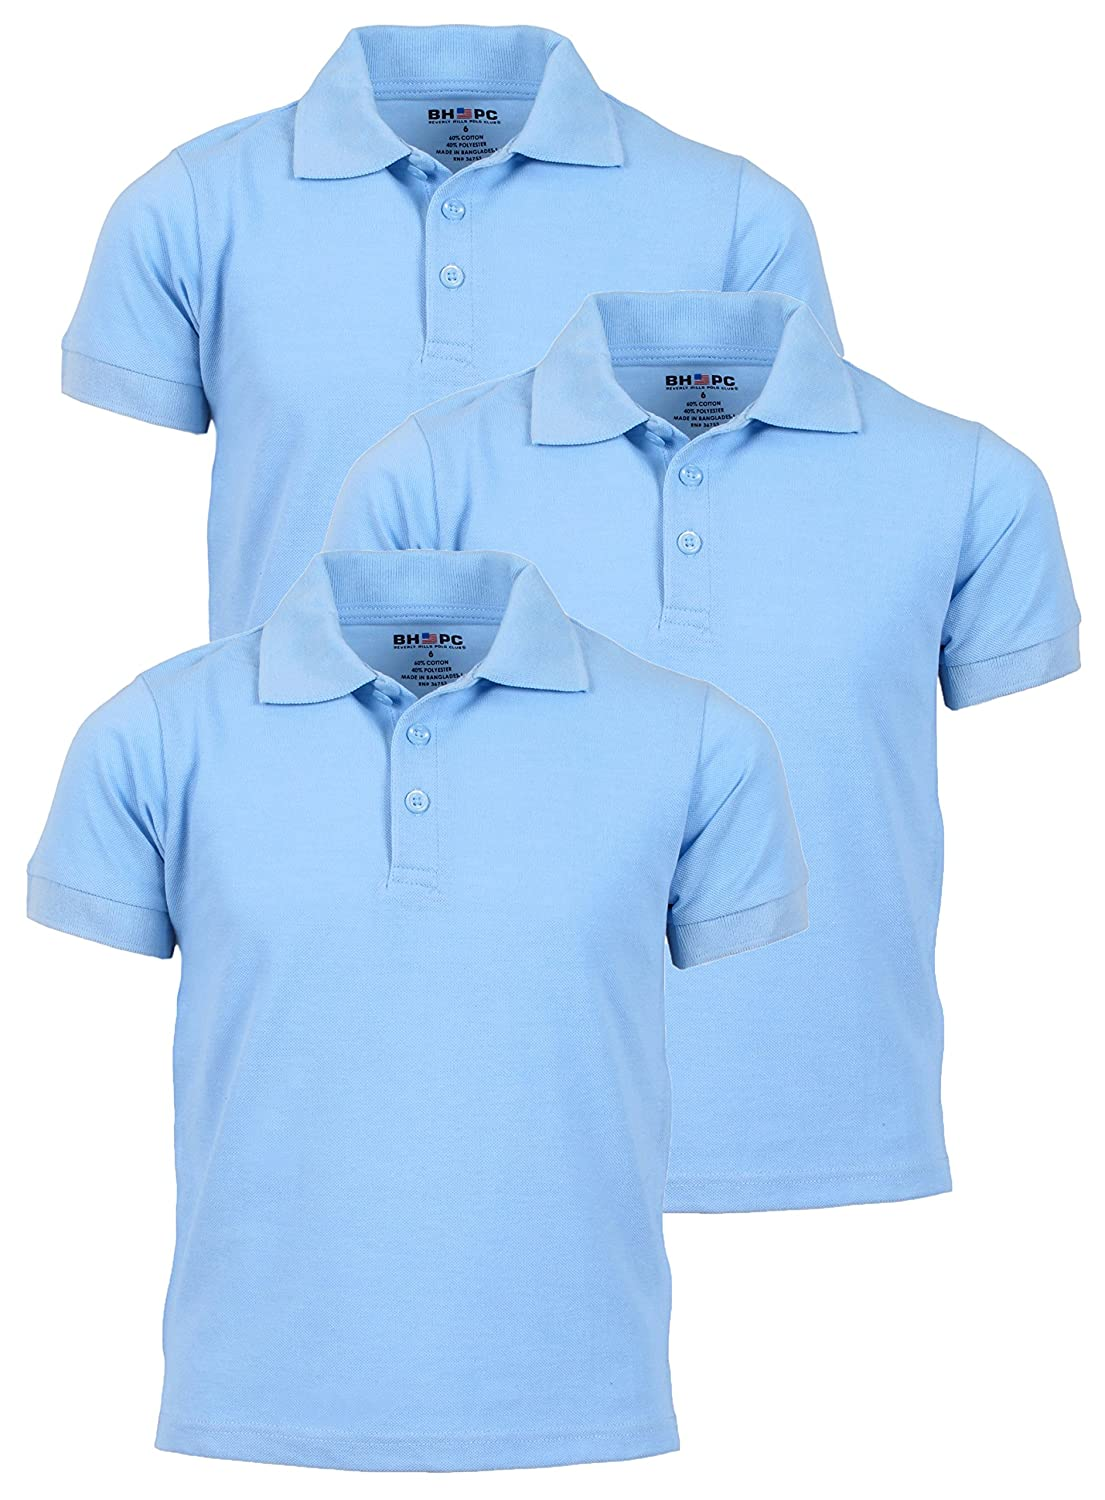 9a48183b4 Strong and Durable 200 GSM polo shirt for boys. Pique knit weaving  characterized by raised parallel cords or fine ribbing. Great option for  School Uniforms; ...